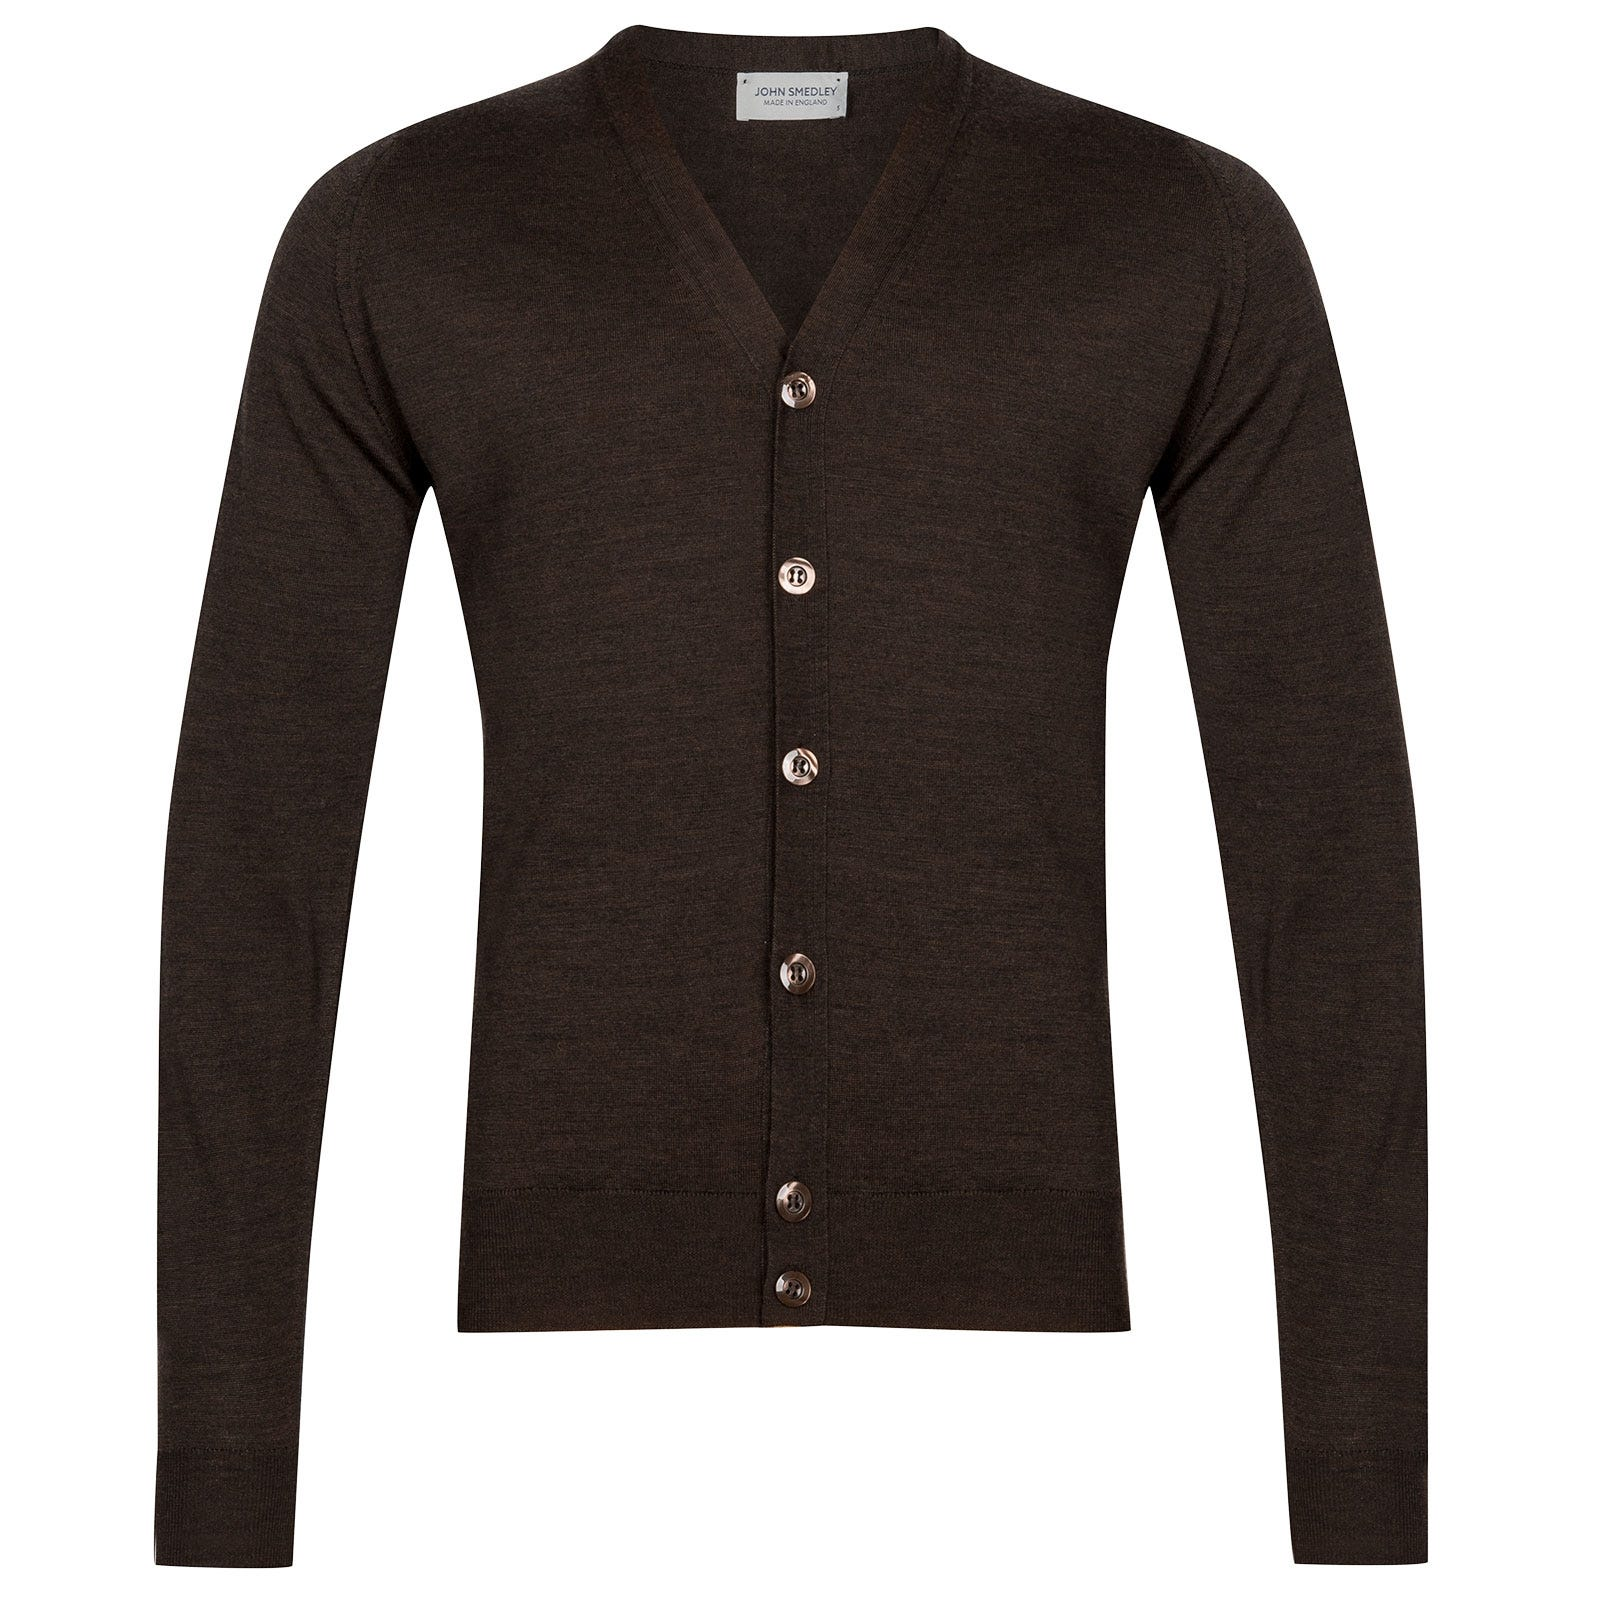 John Smedley Naples Merino Wool Cardigan in Chestnut-M